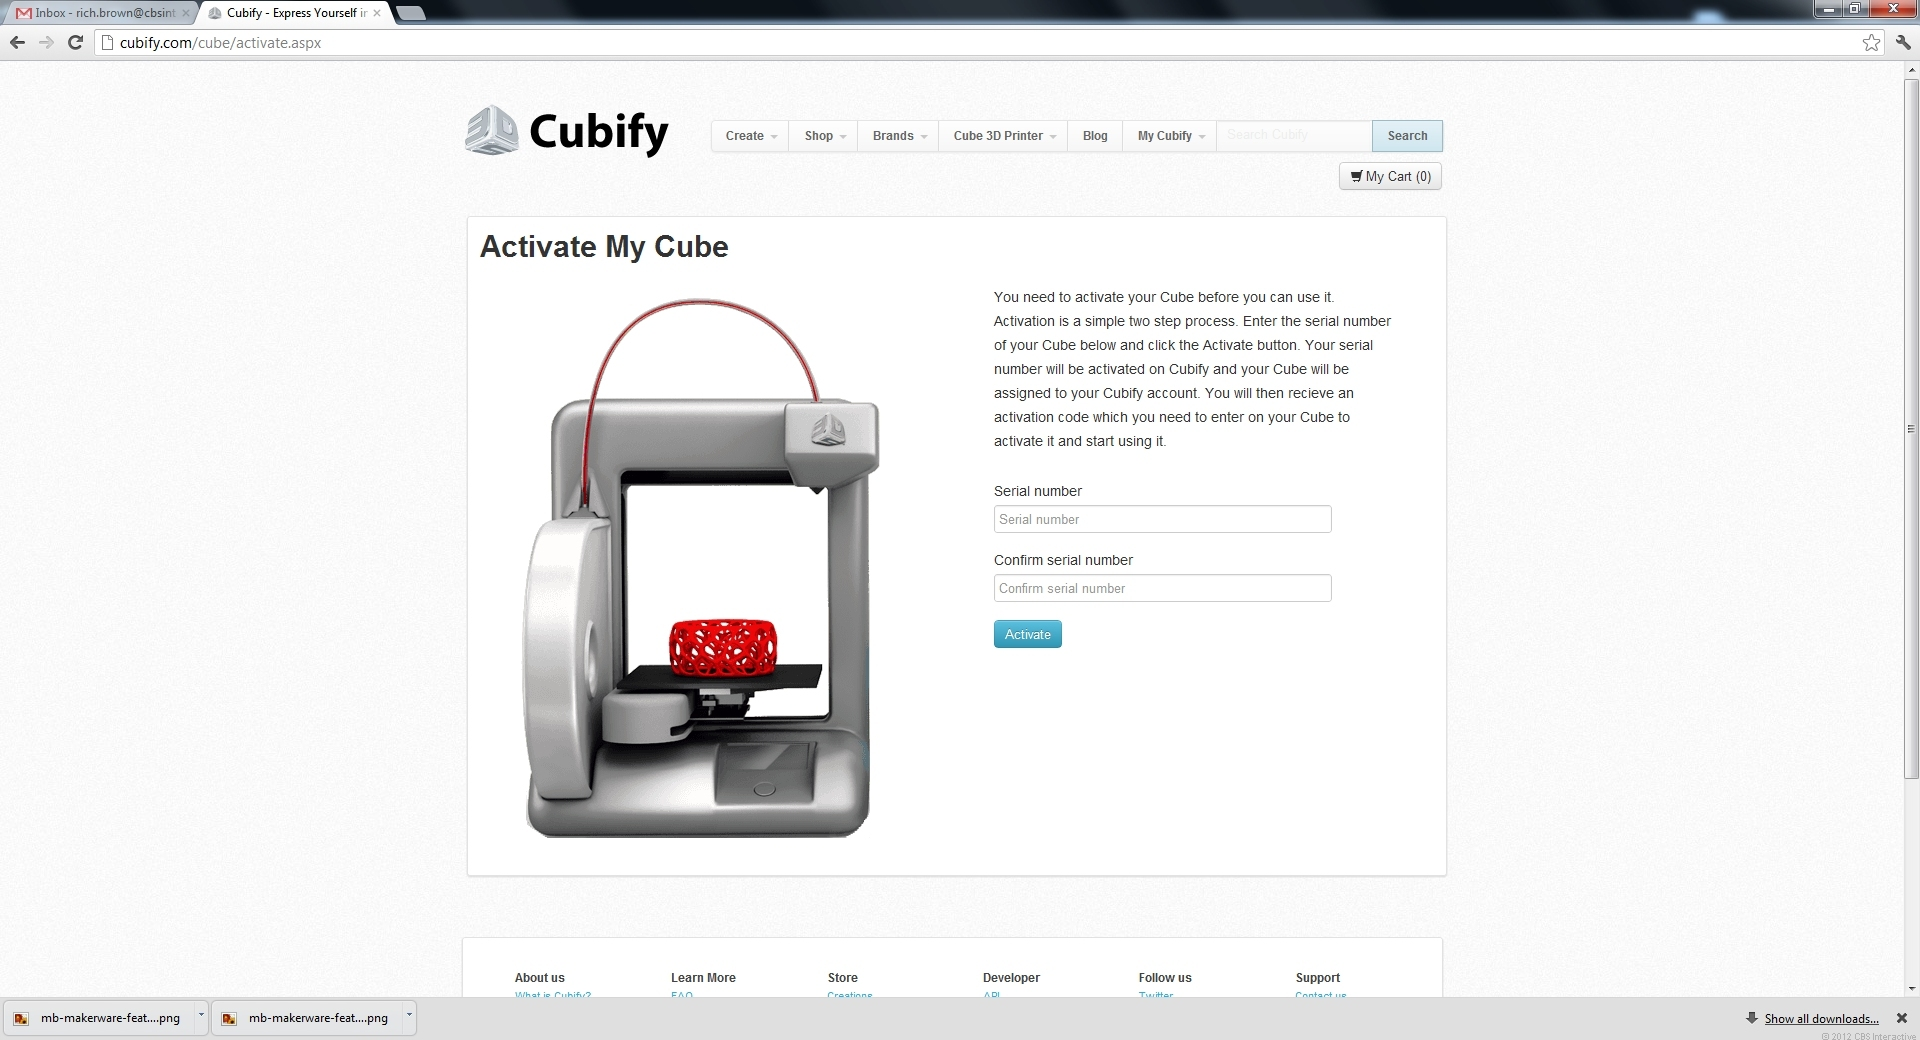 The Cubify activation screen.